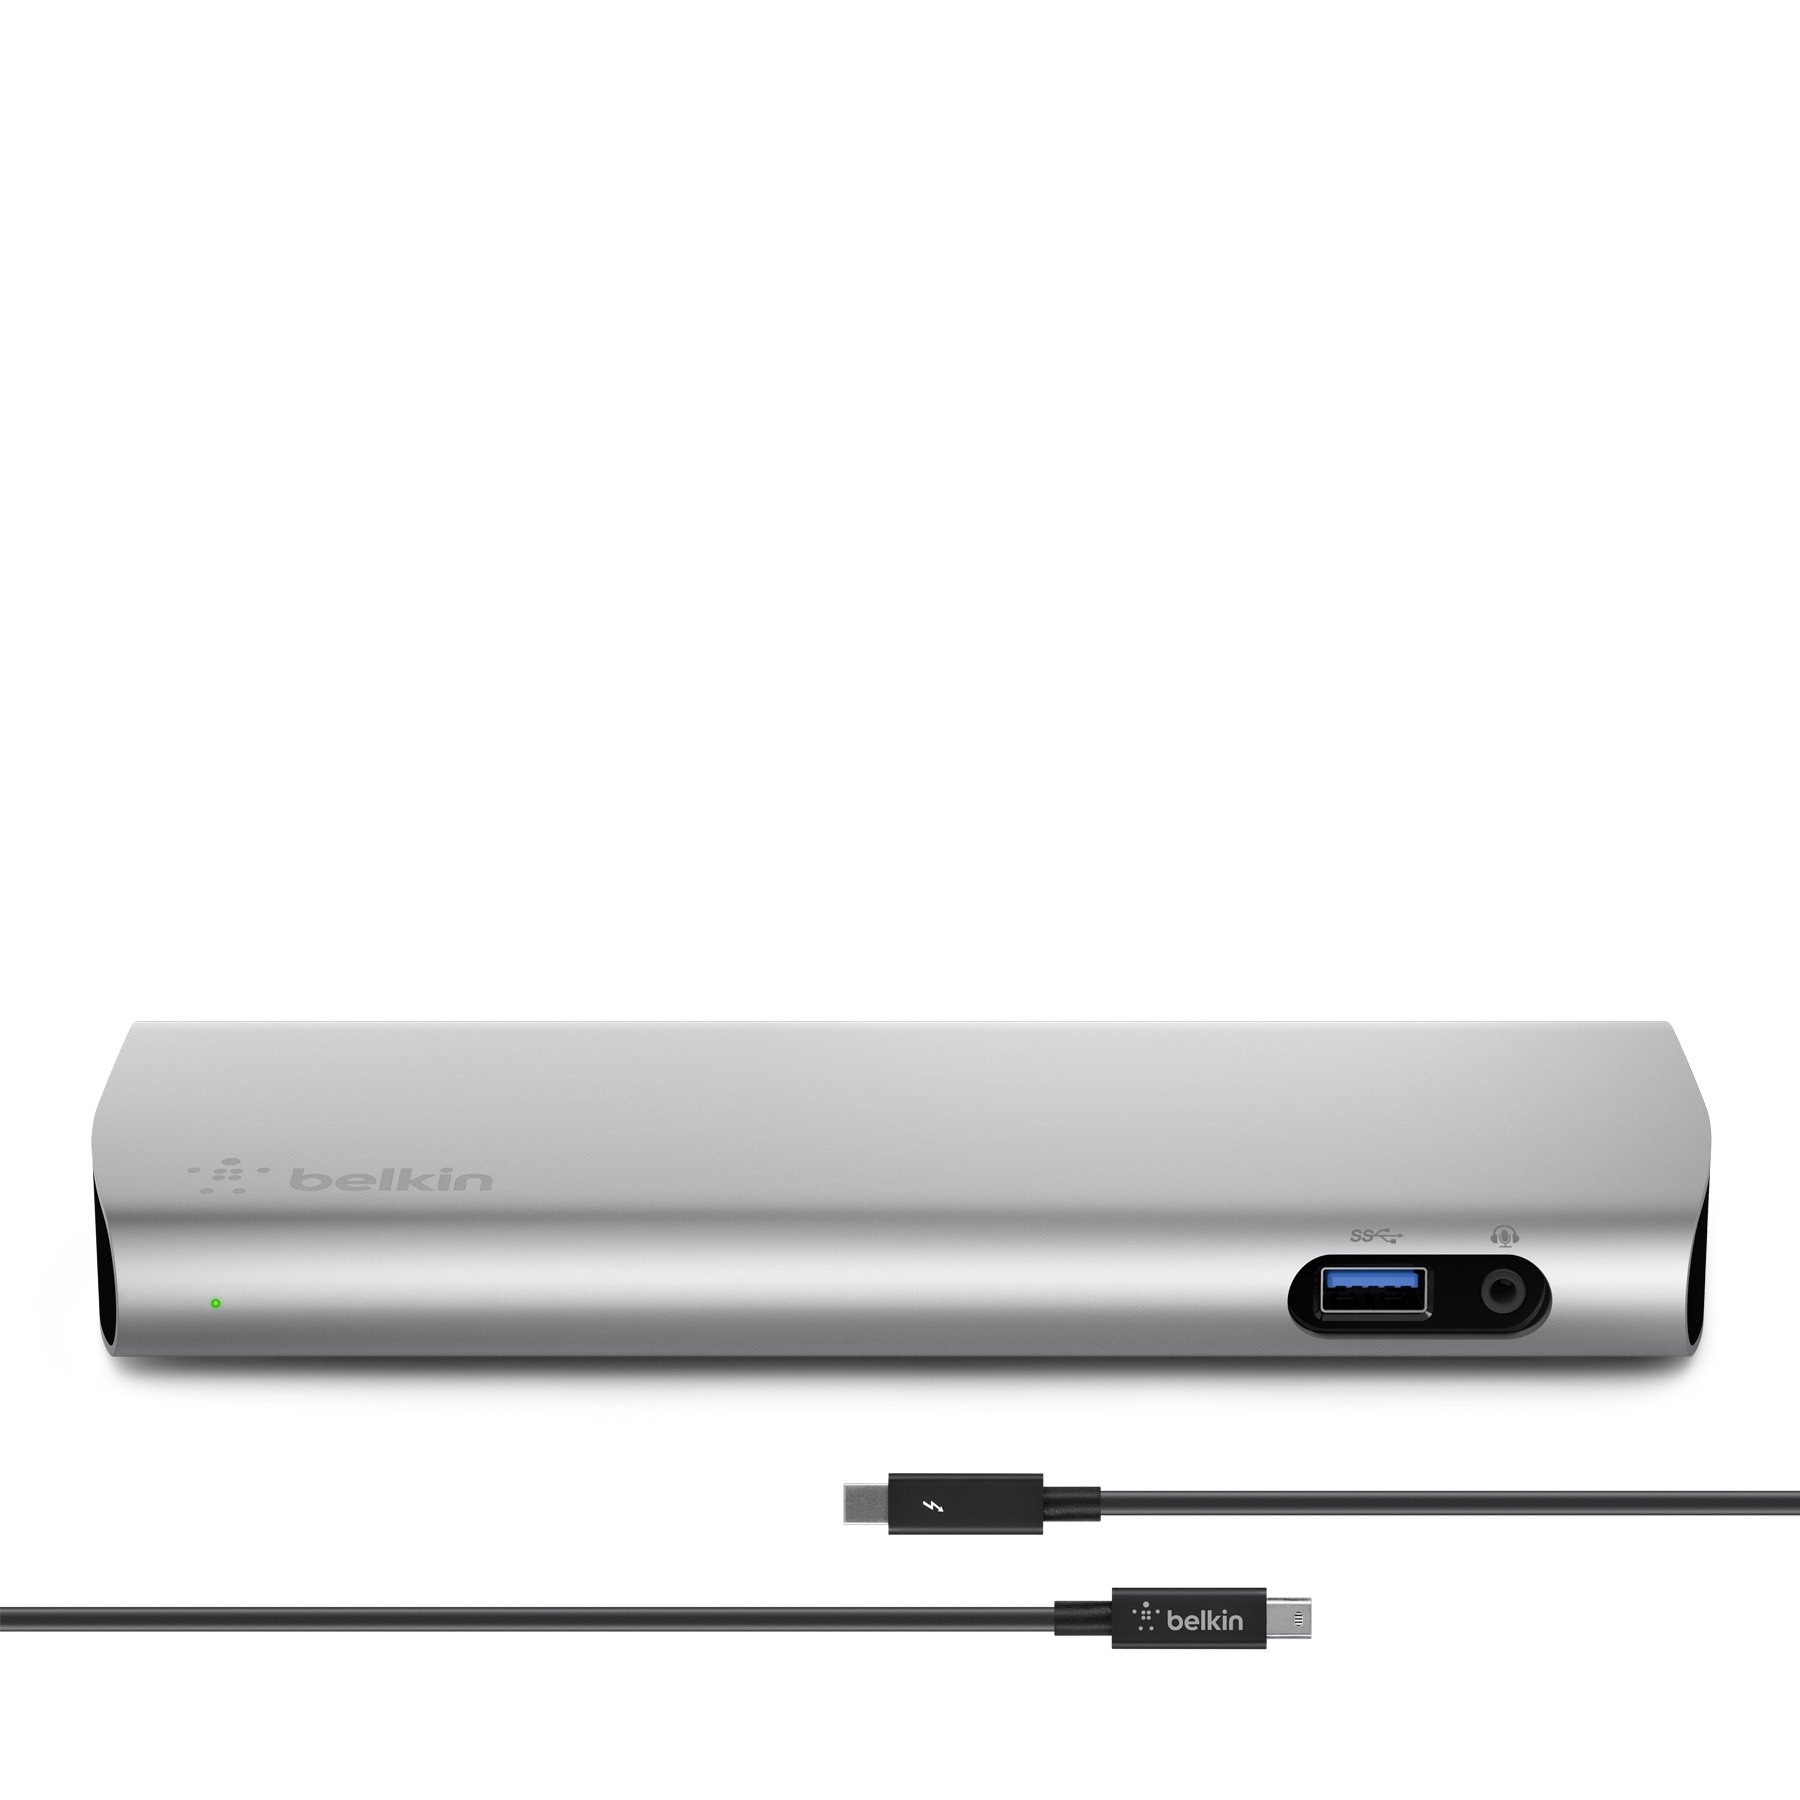 Belkin Thunderbolt 2 Express HD Dock with 1-Meter Thunderbolt Data Transfer Cable, Mac and PC Compatible (F4U085tt) by Belkin